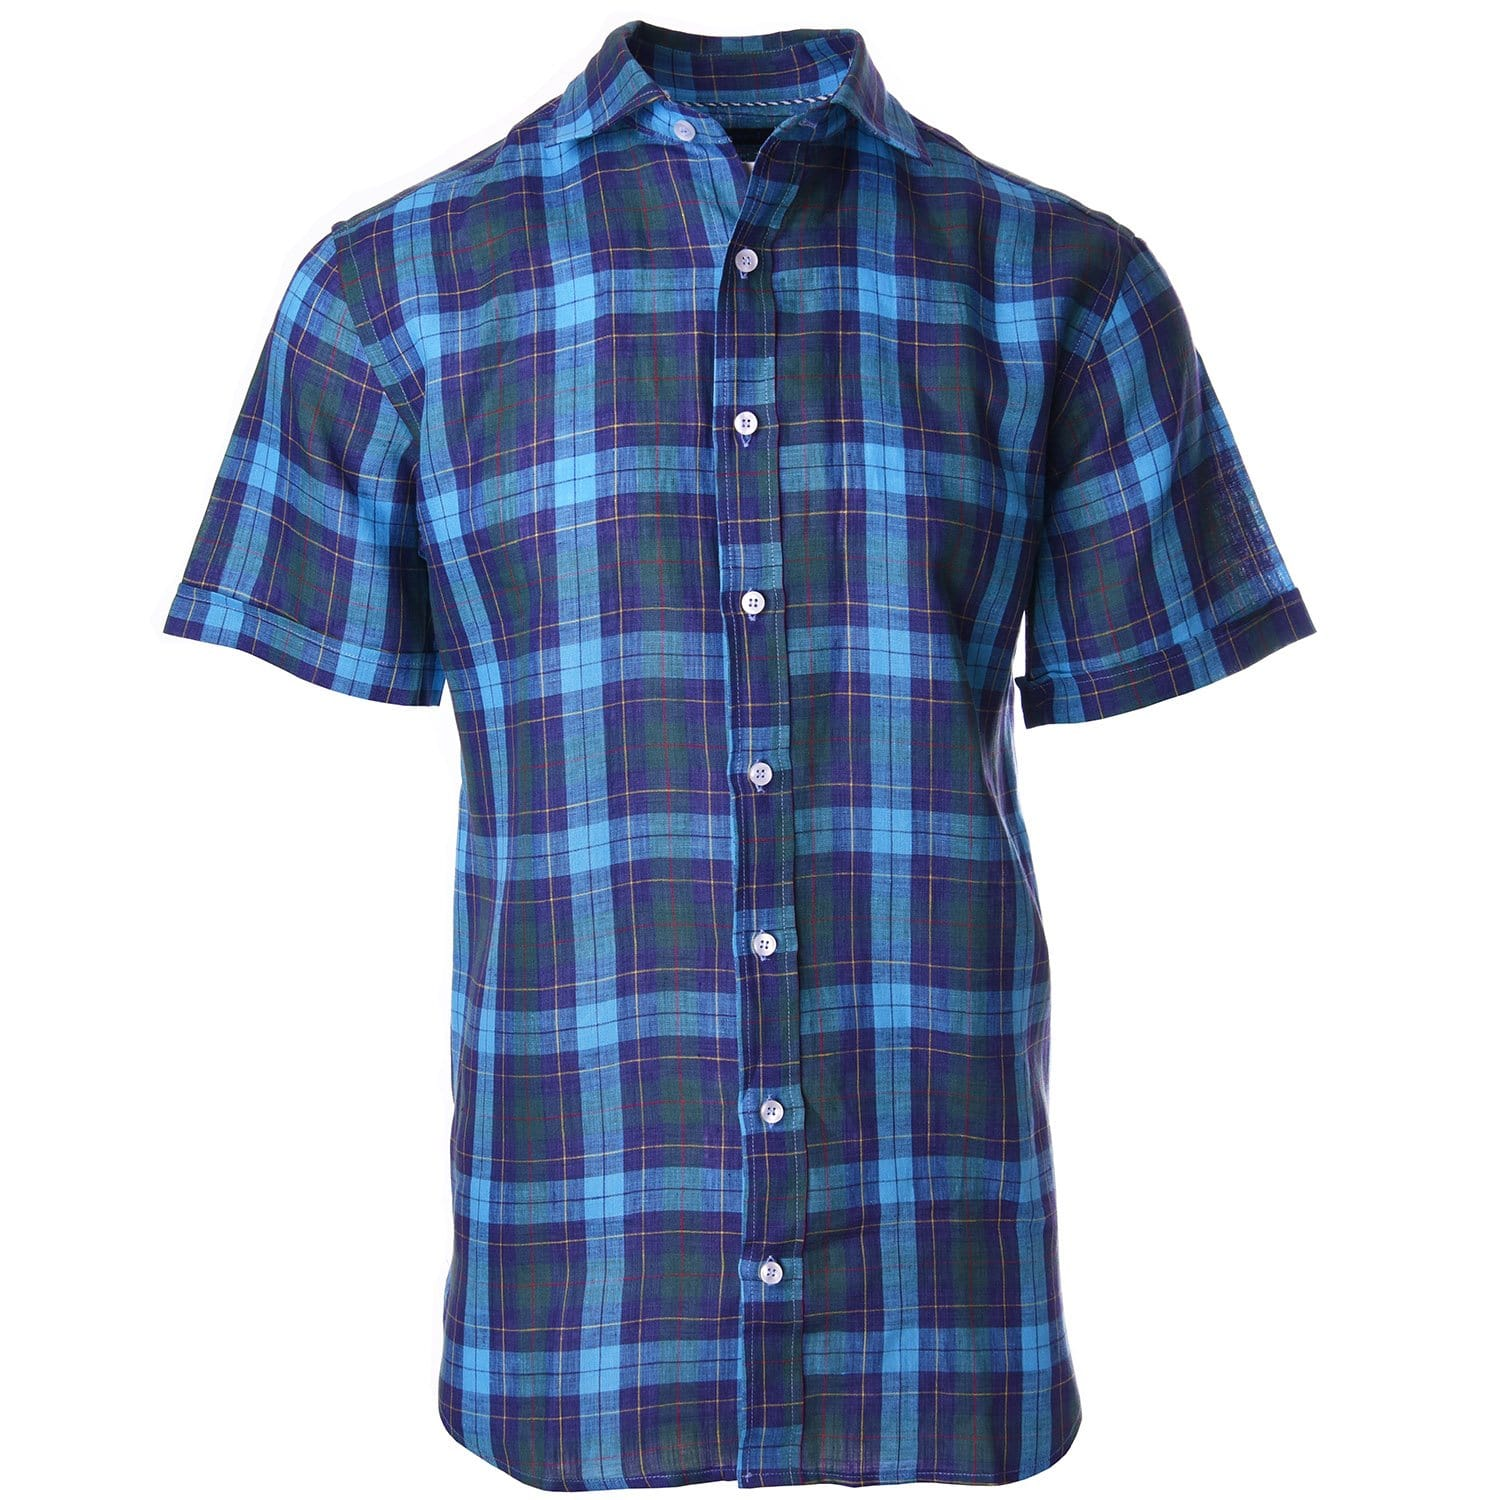 Nicholson Teal Navy Vintage Plaid - Haspel Clothing